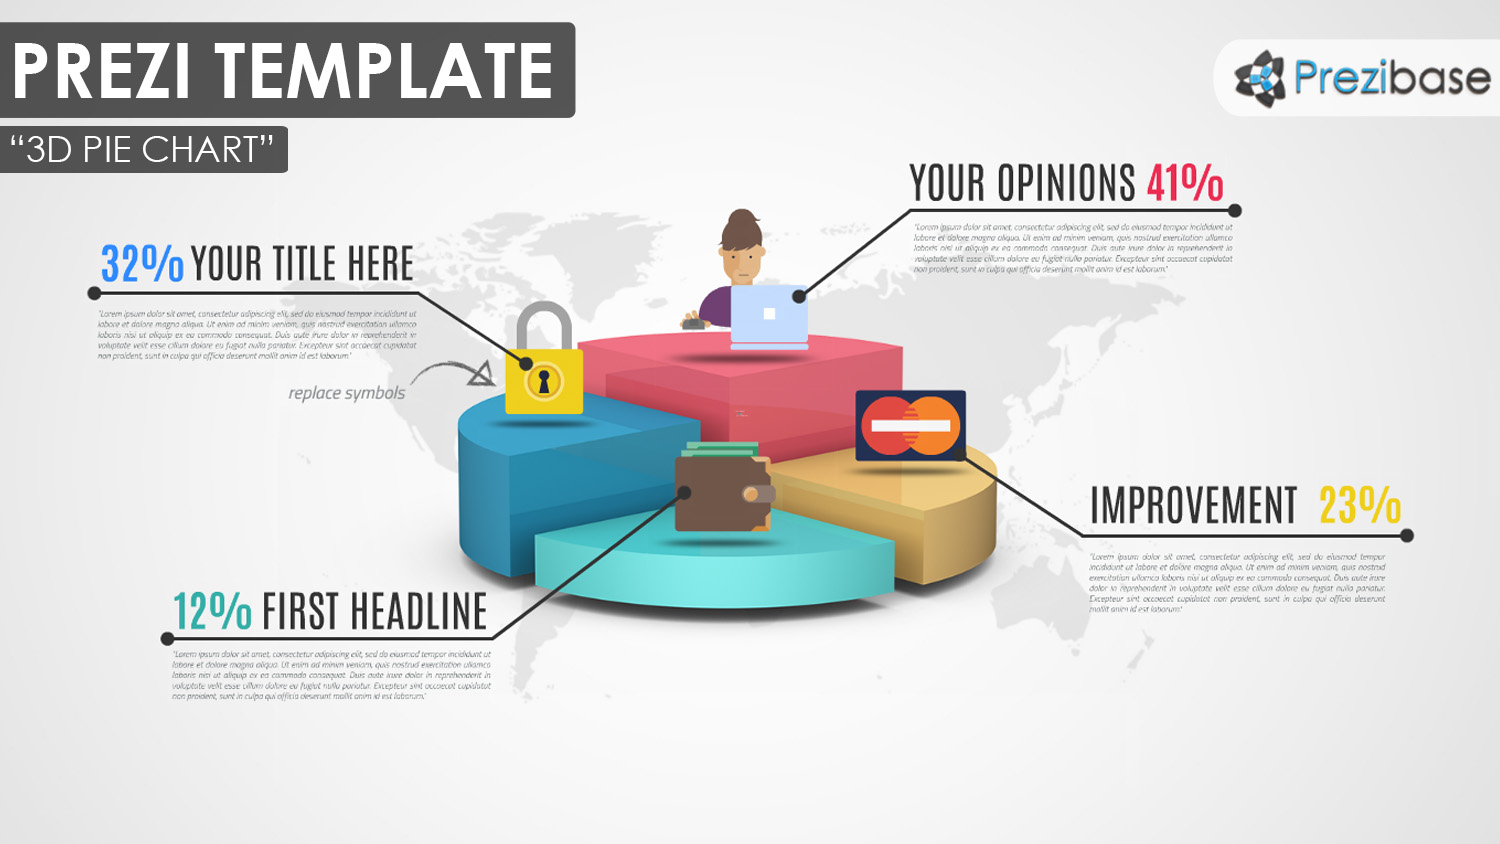 Business prezi templates prezibase 3d pie chart prezi template friedricerecipe